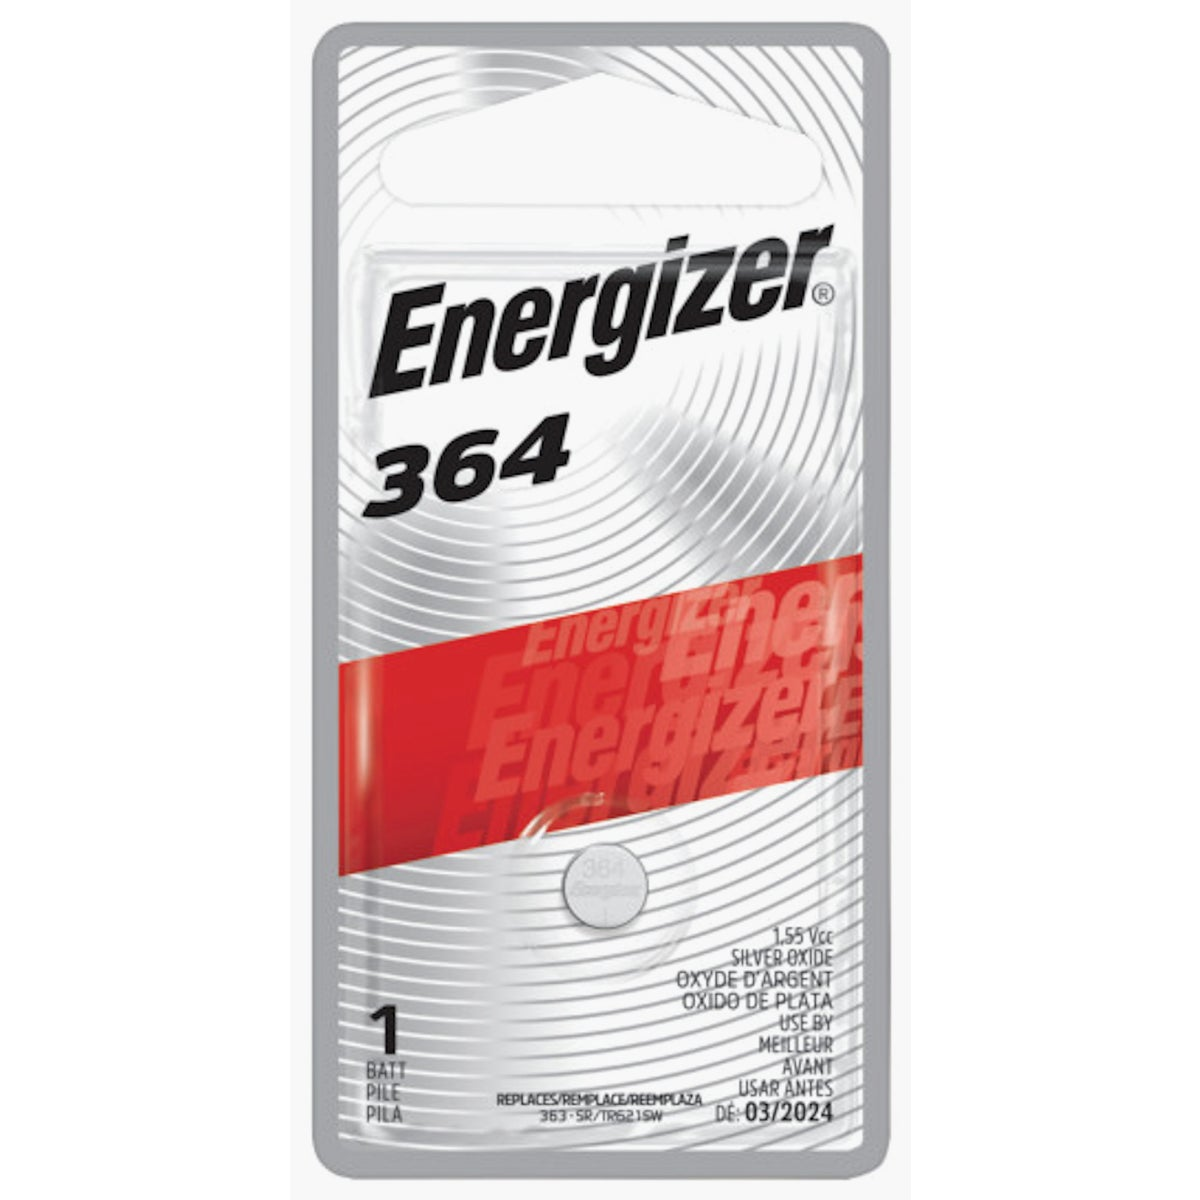 1.6V WATCH BATTERY - 364BPZ by Energizer